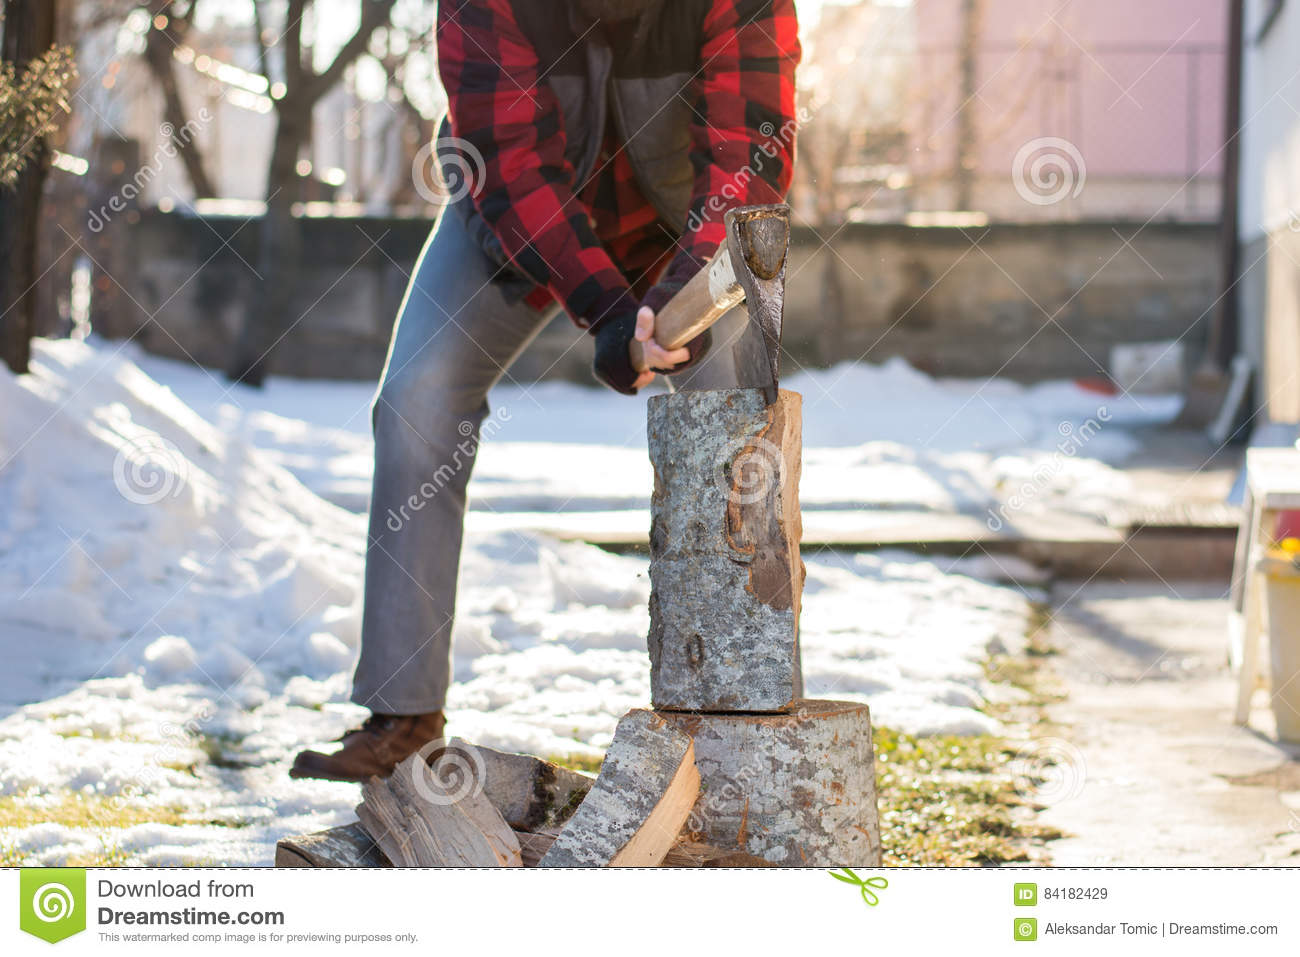 Man Chopping Firewood In The Yard Stock Image - Image of ...